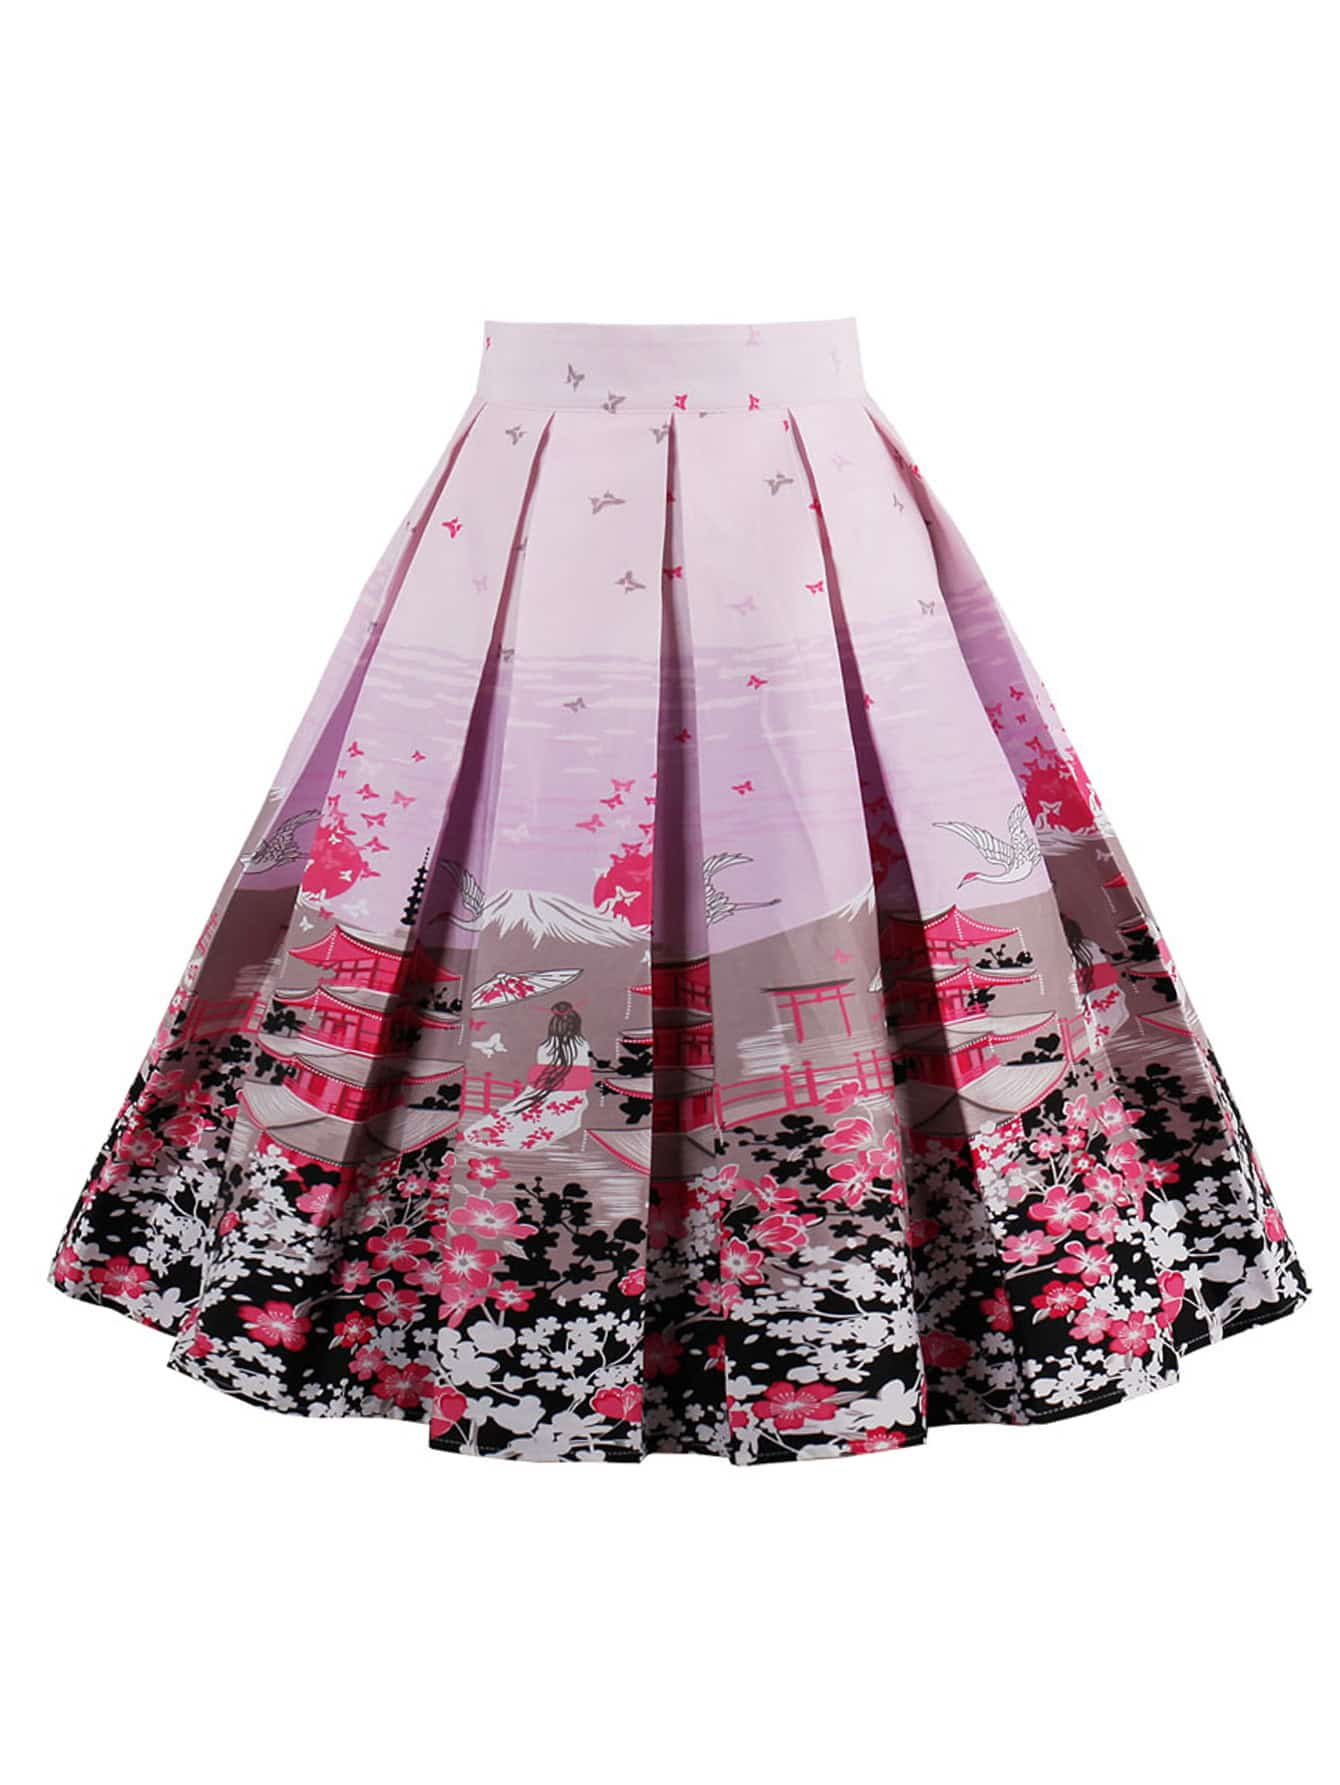 Graphic Print Box Pleated Skirt Emmacloth Women Fast